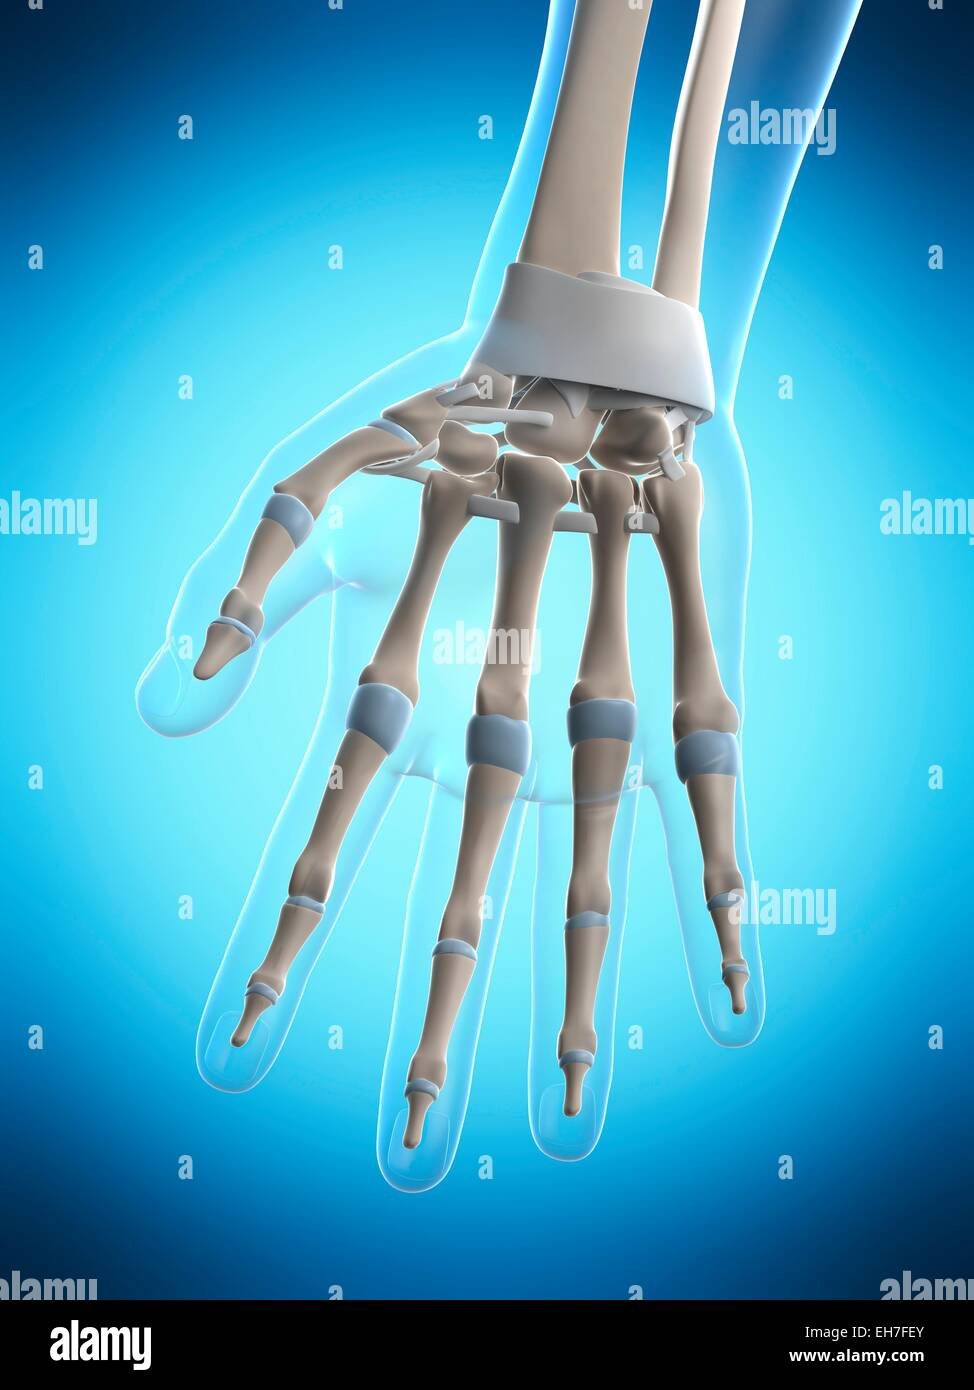 Human Hand Ligaments Stock Photos Human Hand Ligaments Stock